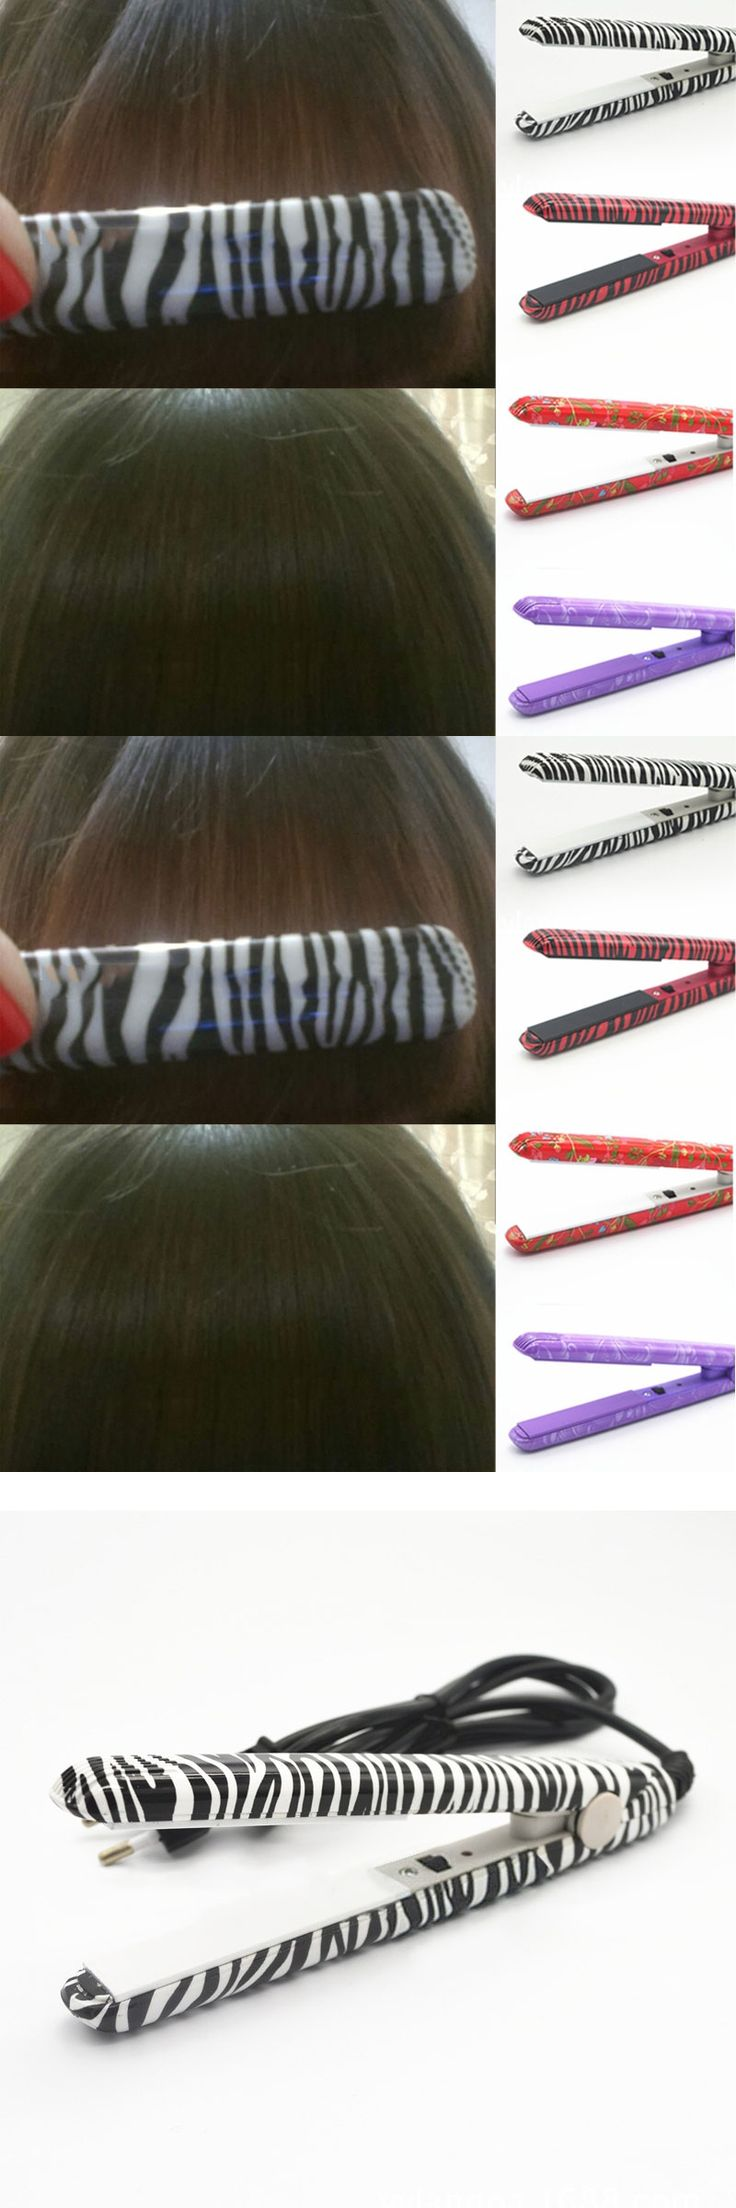 4 Colors Styling Tools New Professional Hairstyling Mini Portable Ceramic Flat Zebra Hair Straightener Irons   @ME88